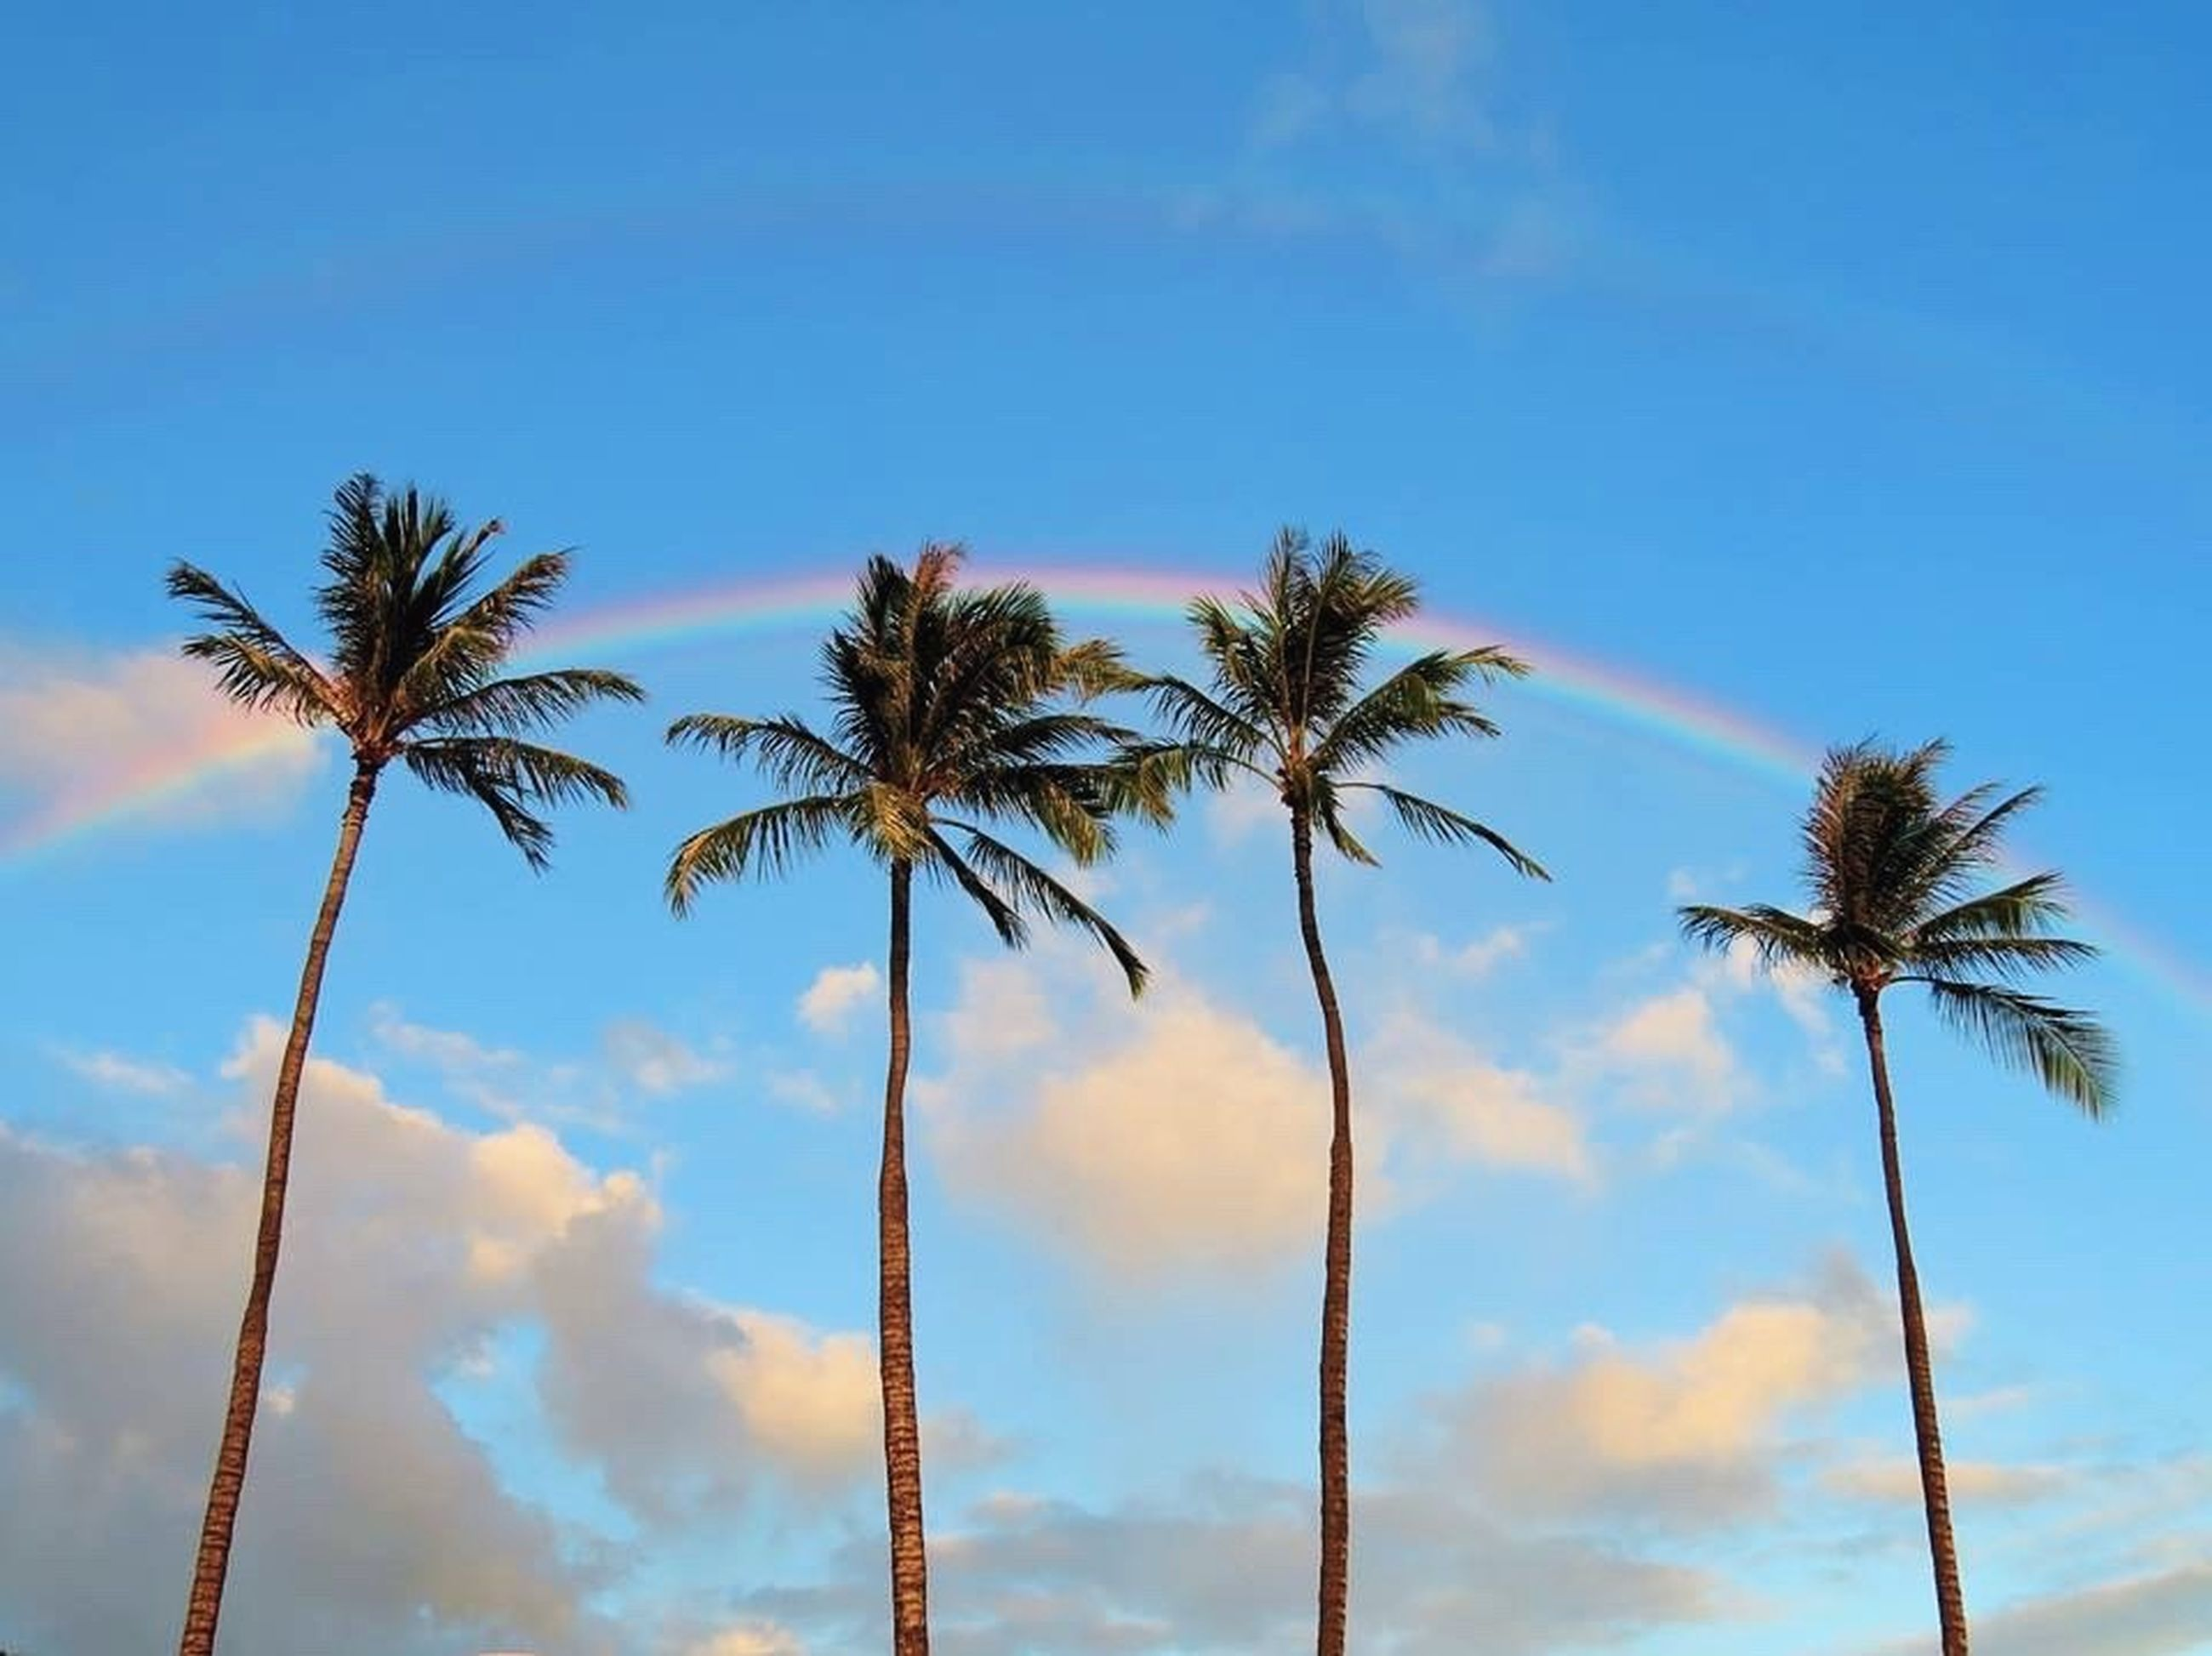 palm tree, low angle view, sky, tree, blue, tree trunk, growth, tranquility, nature, cloud - sky, silhouette, beauty in nature, tall - high, cloud, coconut palm tree, scenics, outdoors, no people, day, tranquil scene